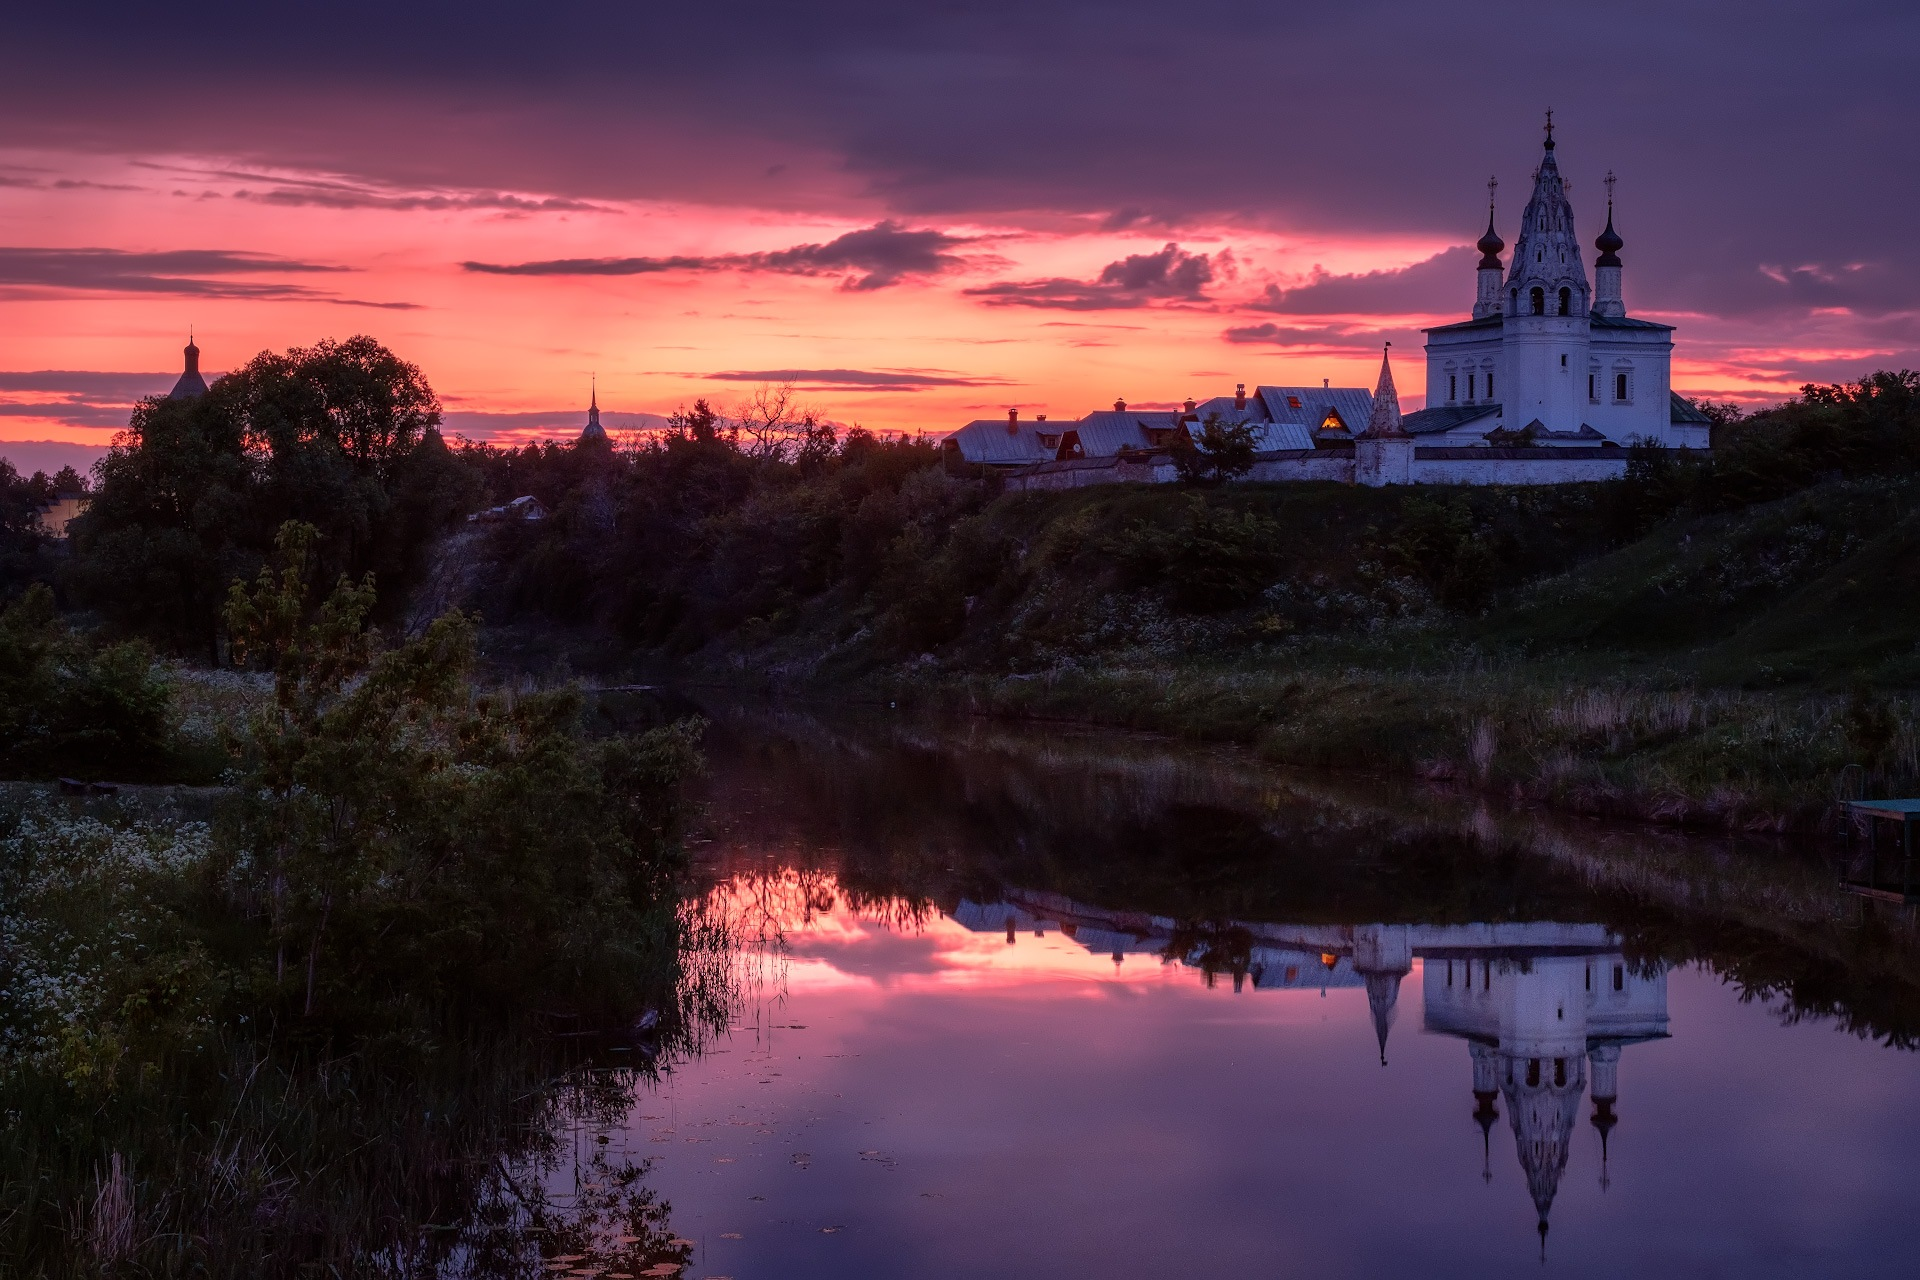 Dawn behind the monastery by Andrey Chizh